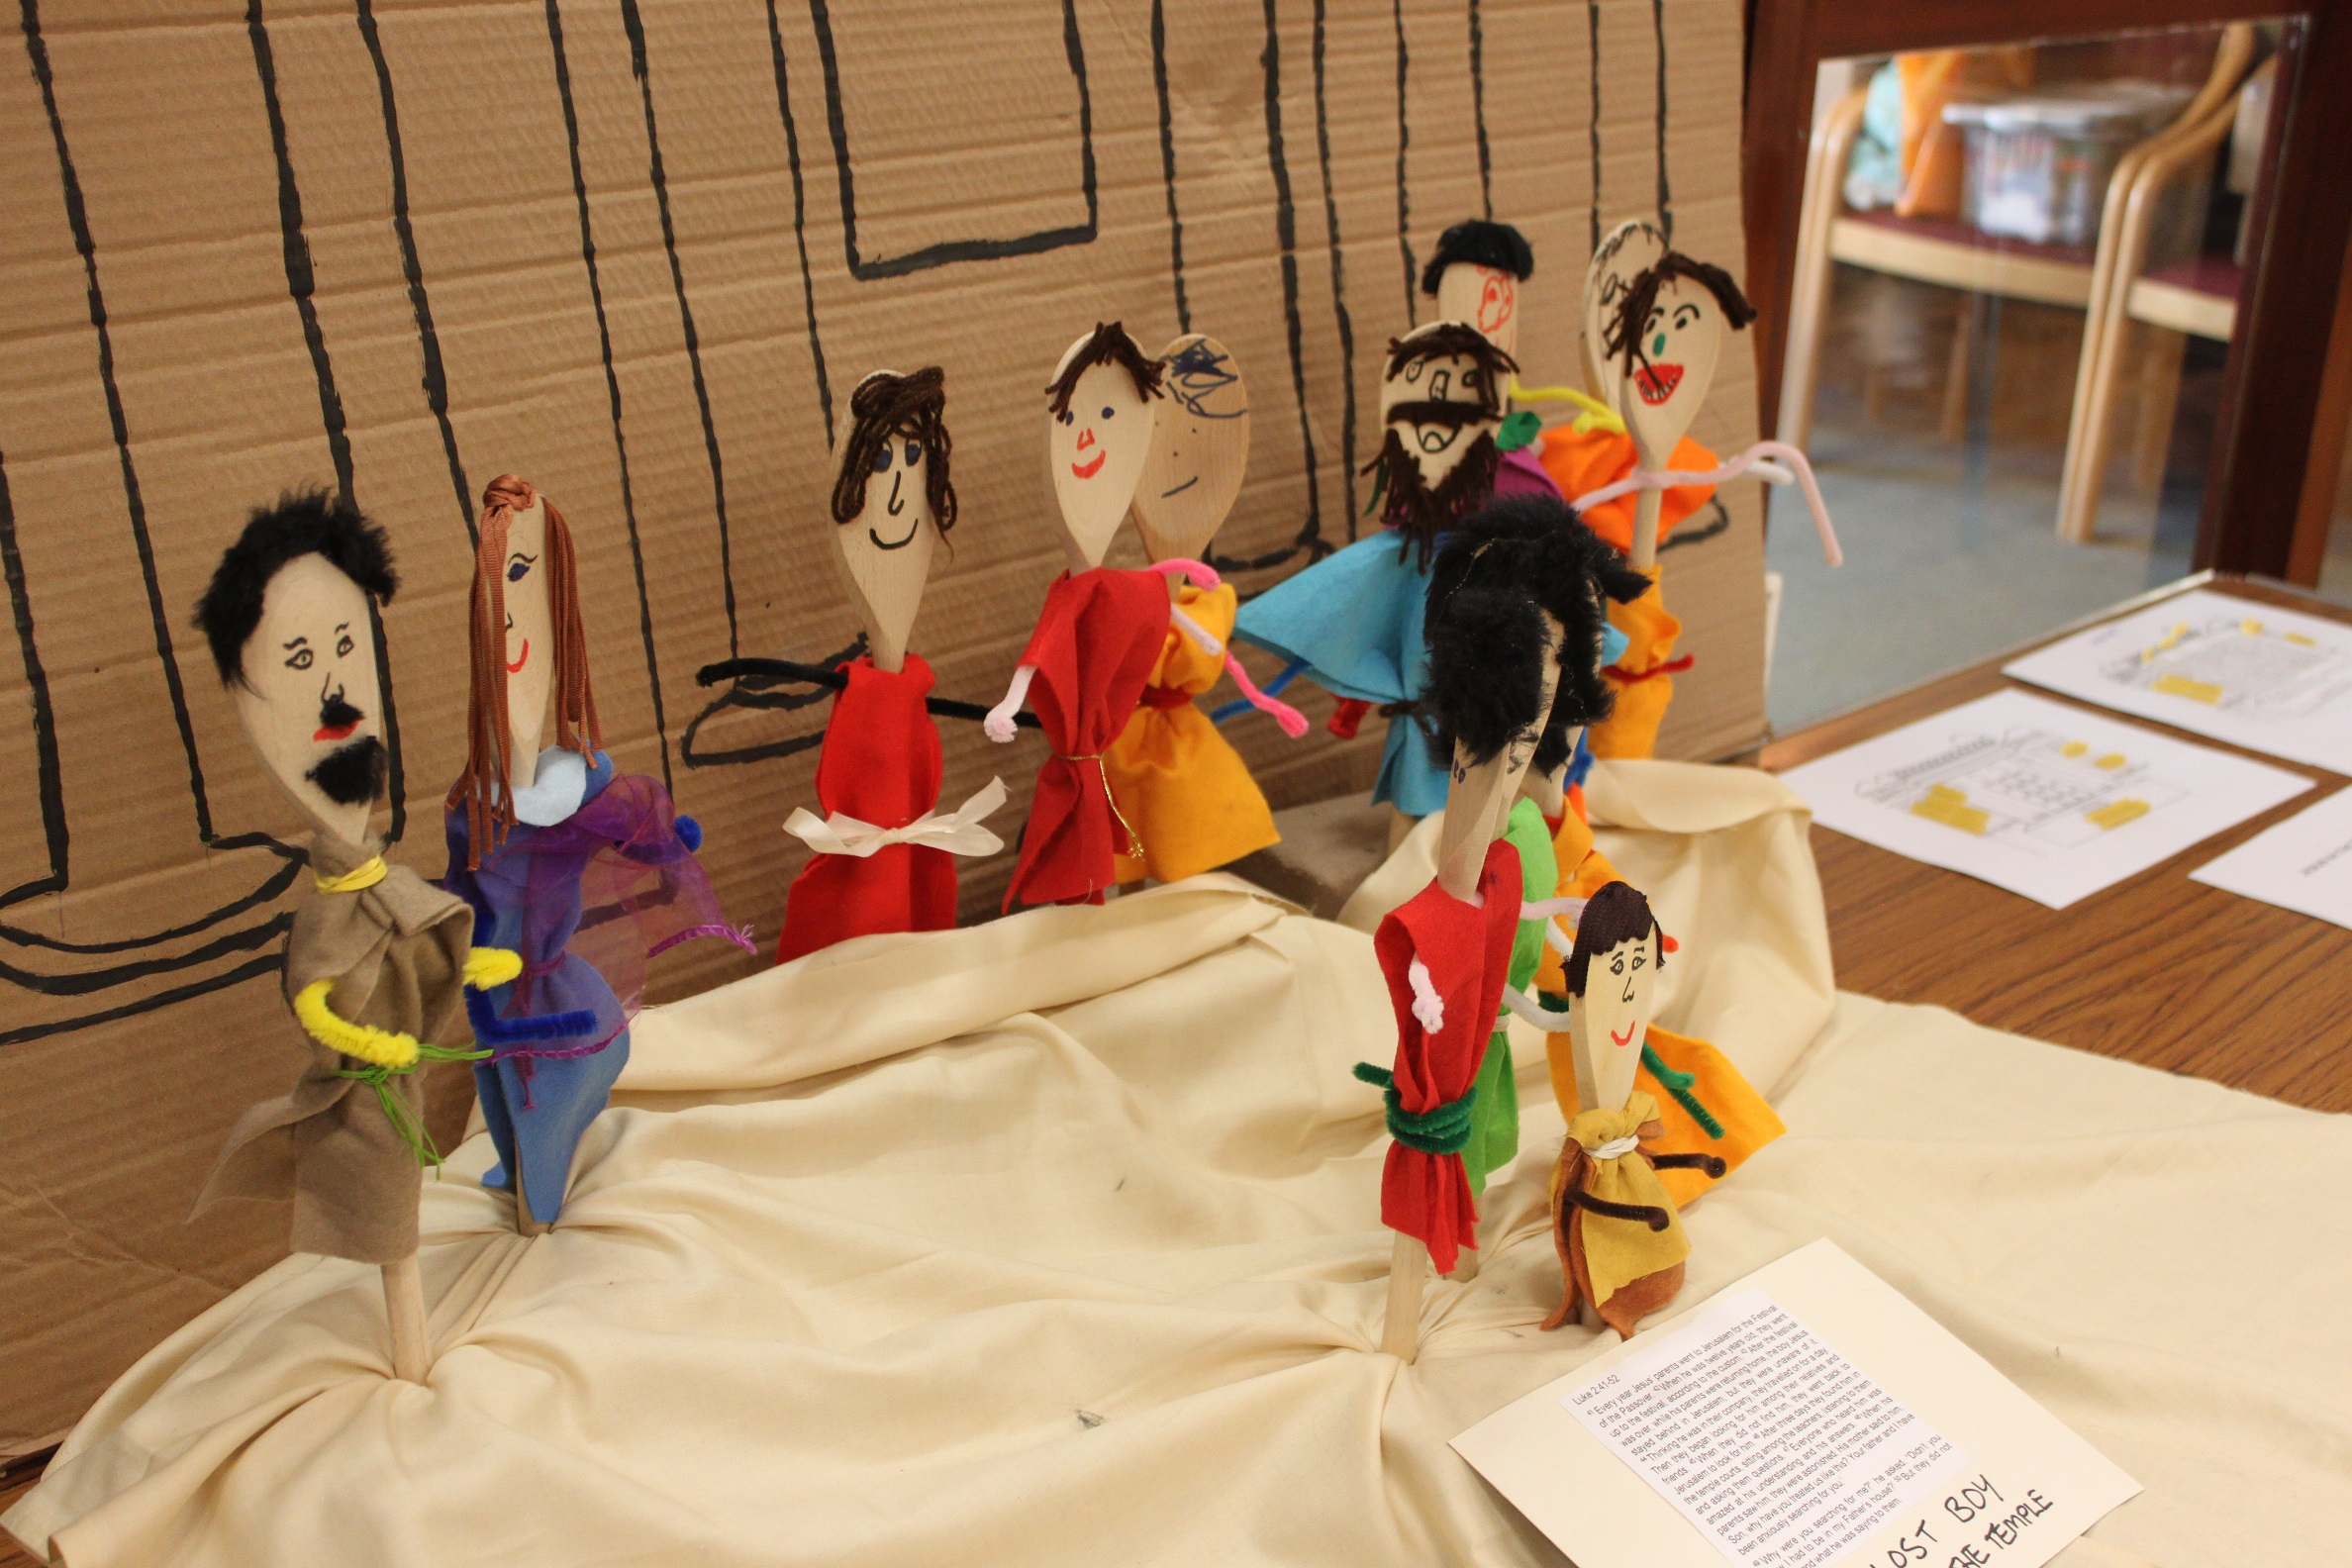 Bible stories from the childrens groups - photo by Keith Foxwell